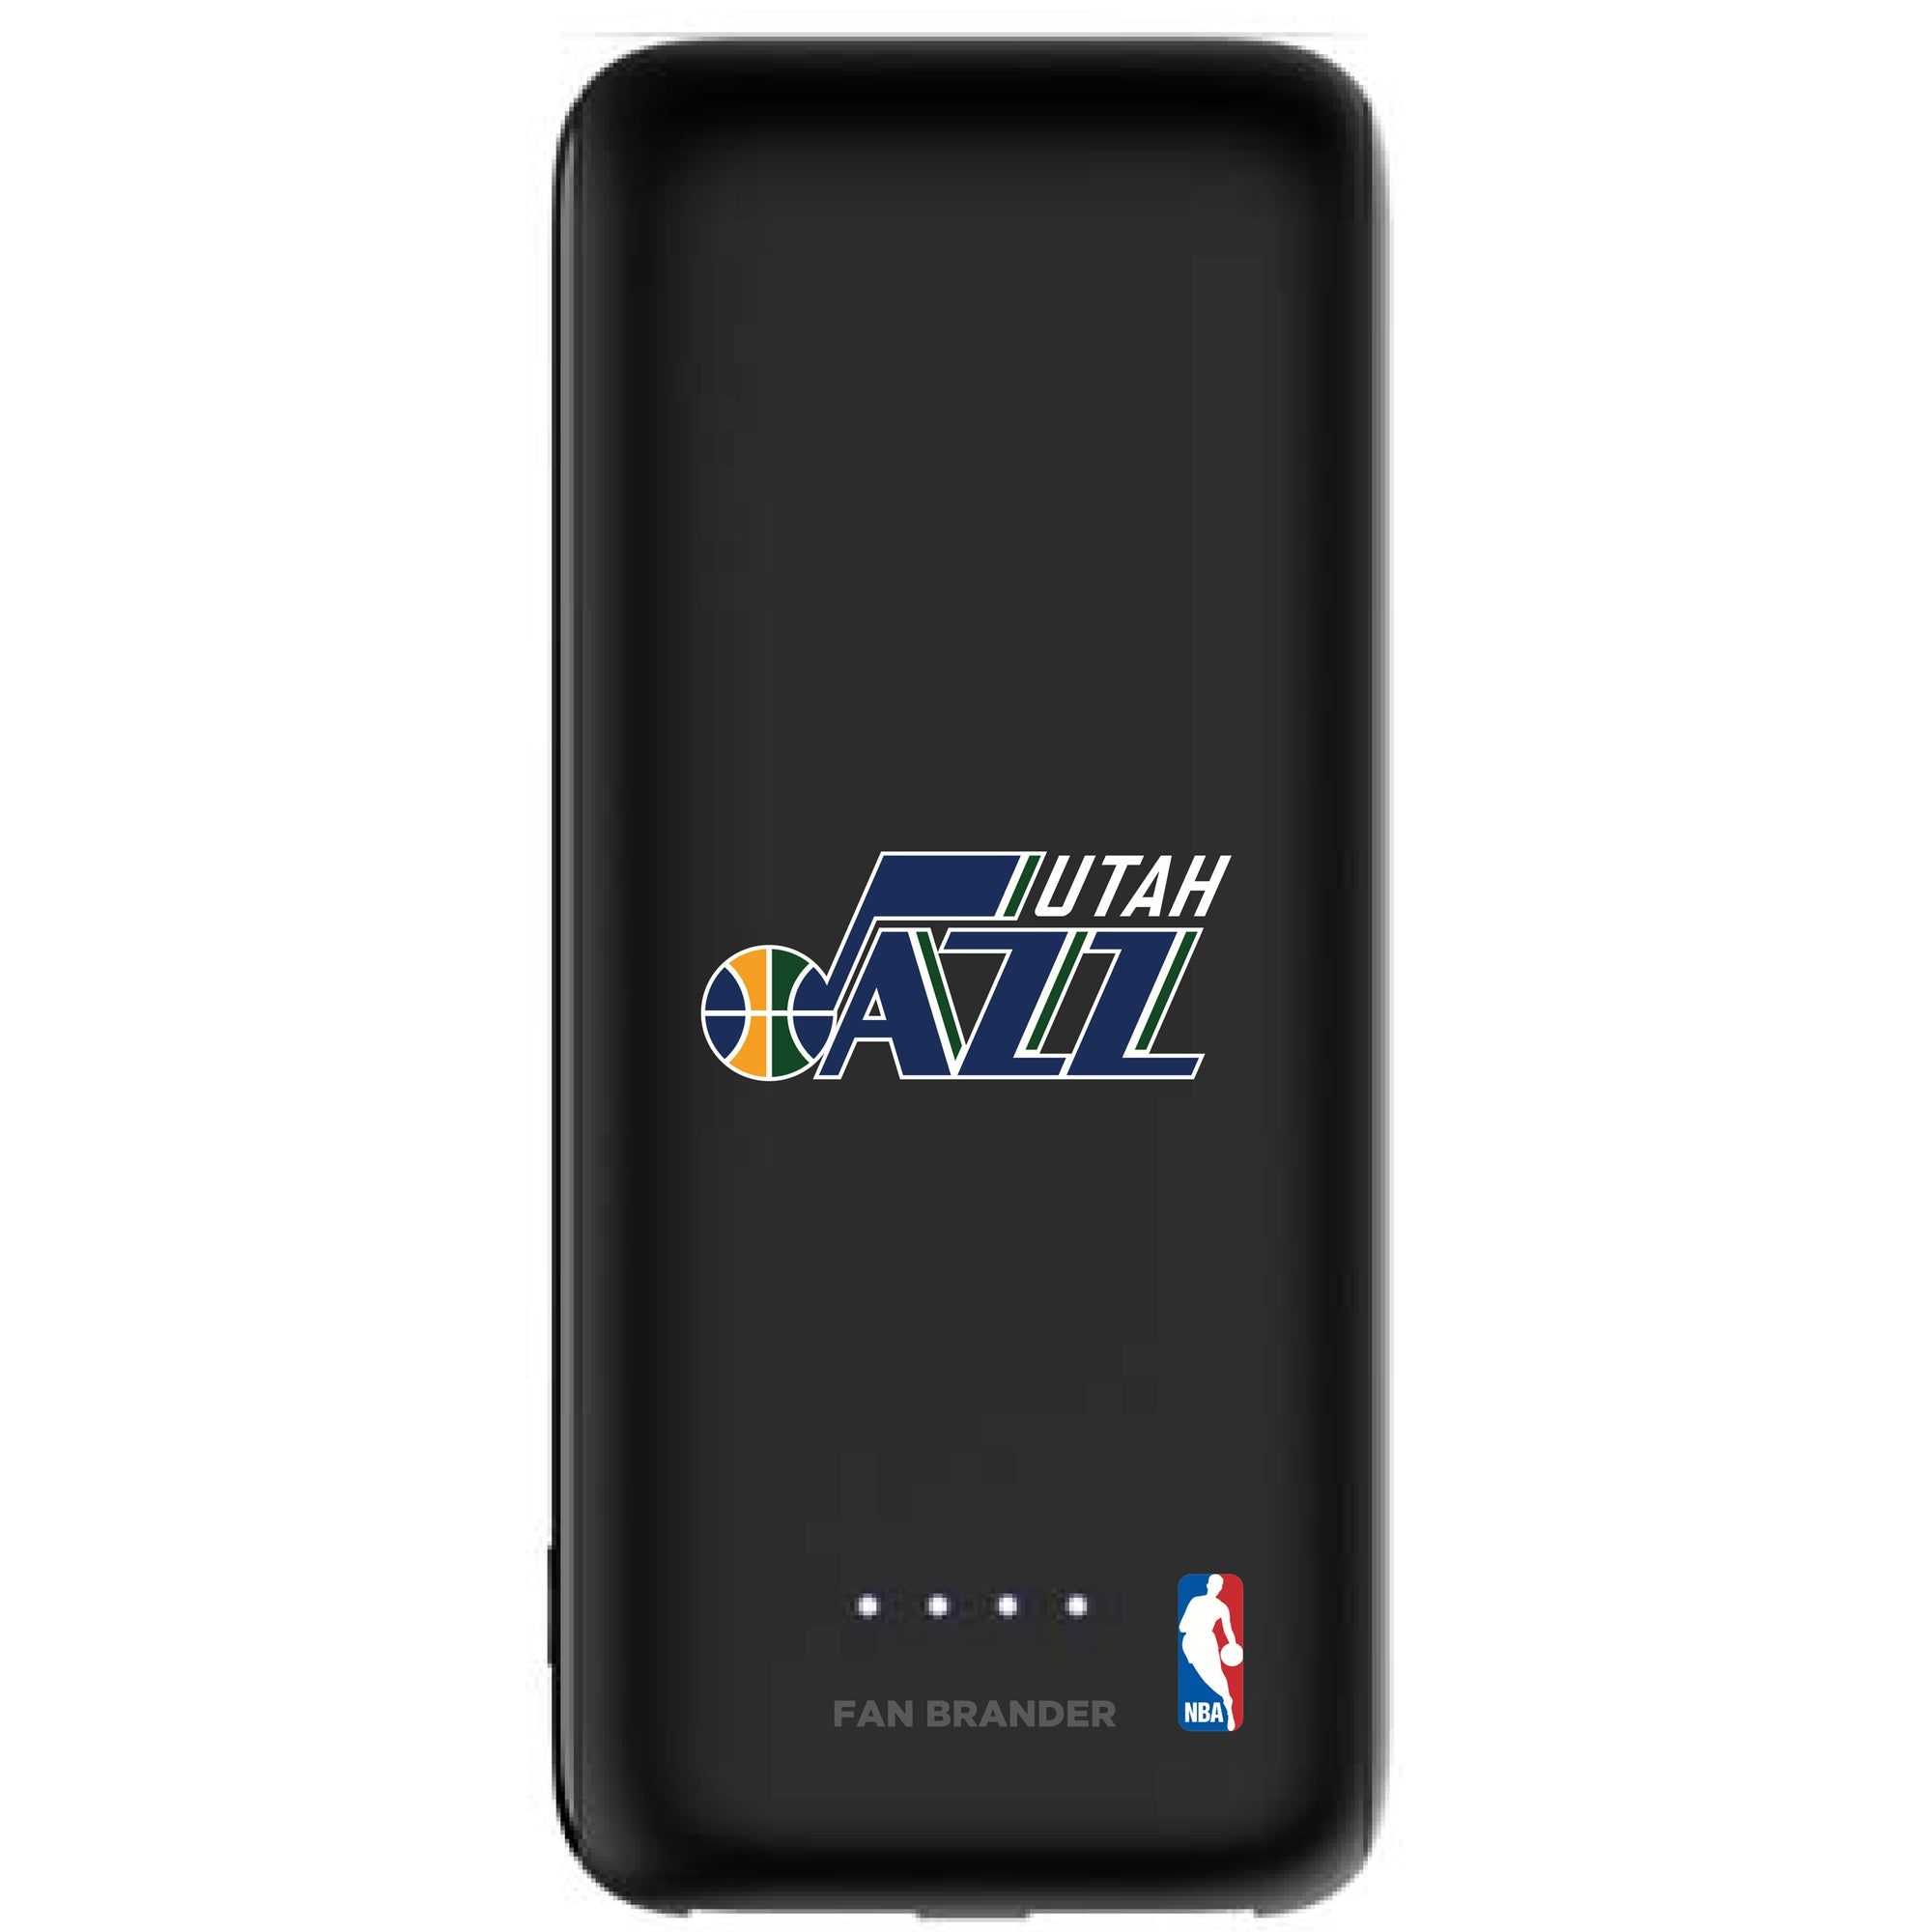 Utah Jazz Power Boost Mini 5,200 mAH